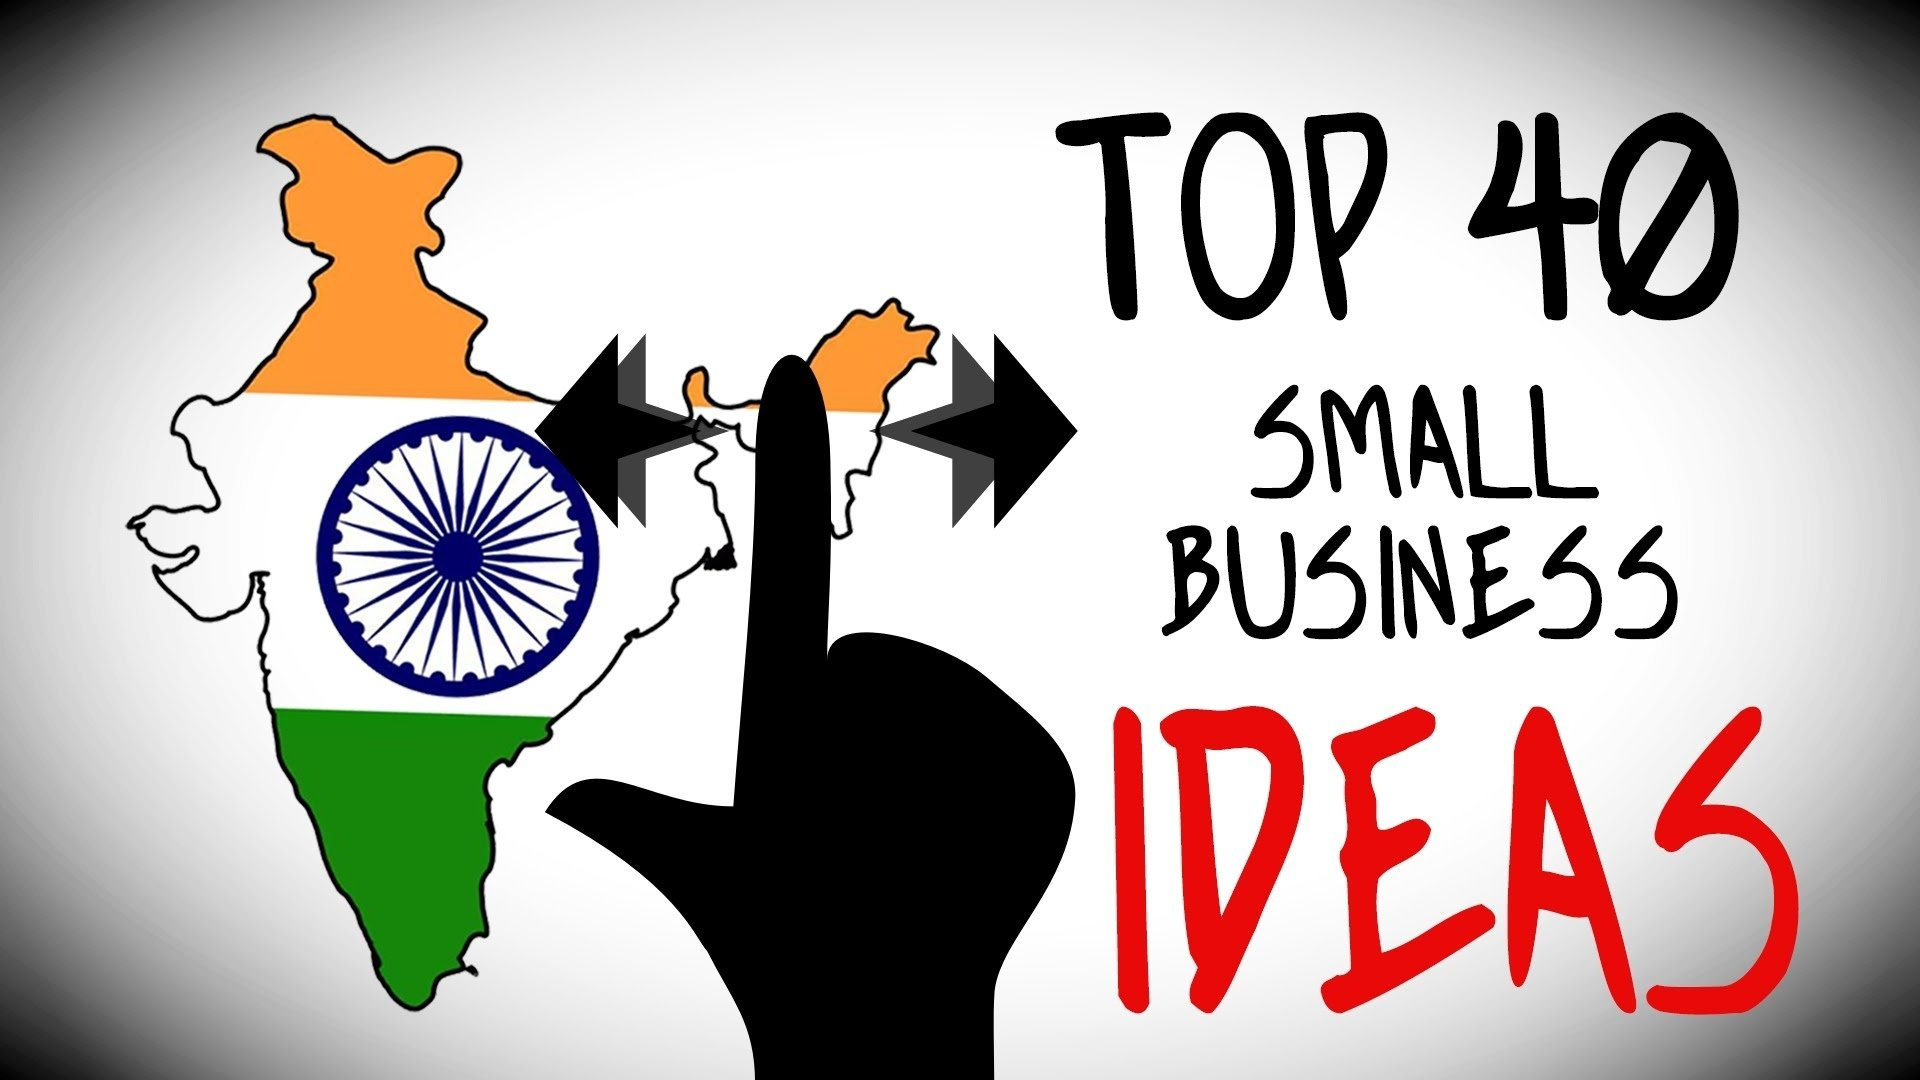 10 Best Good Ideas To Start A Business top 40 small business ideas in india for starting your own business 19 2020